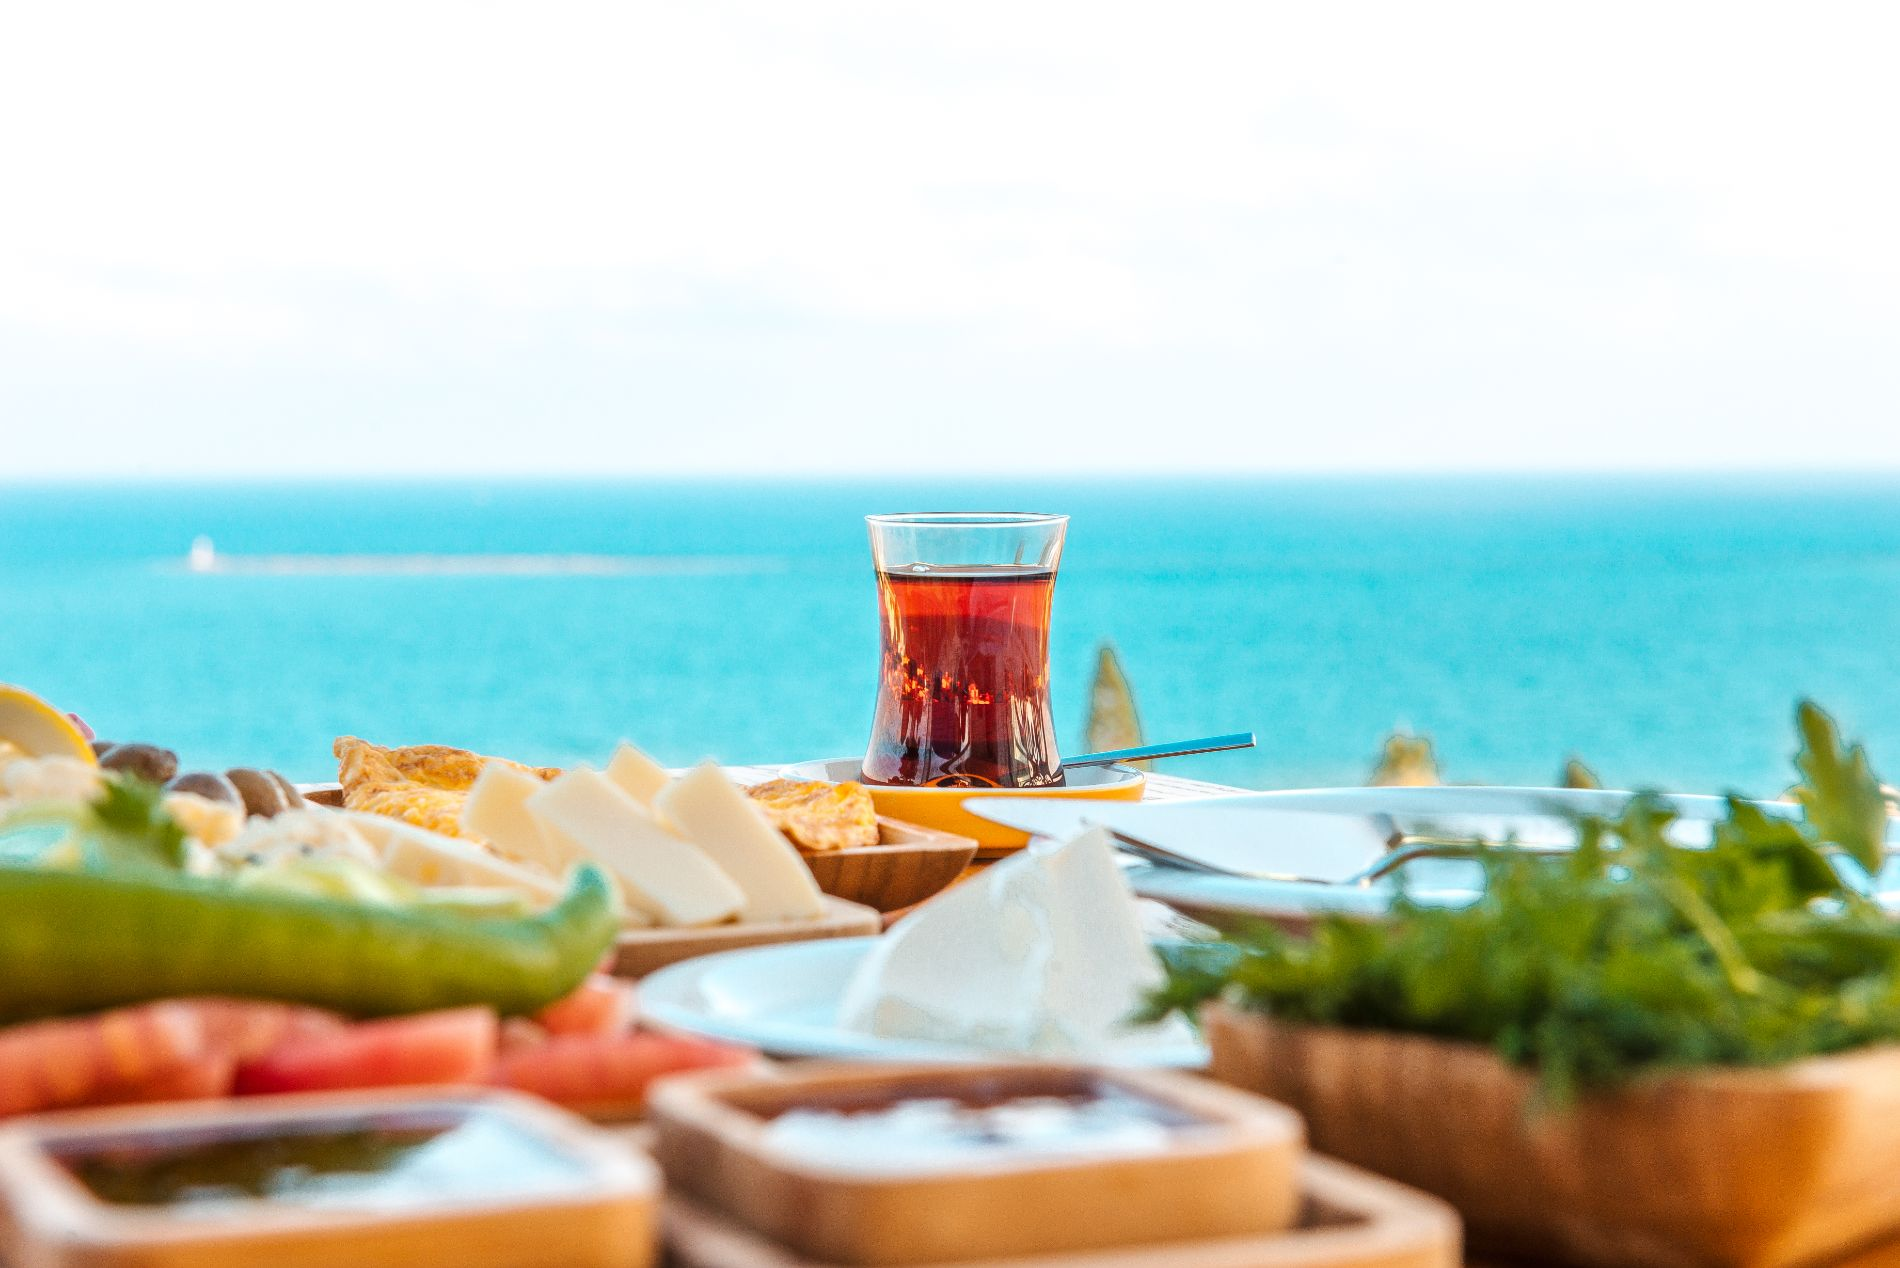 Turkish tea with breakfast on the table in front of sea background landscape